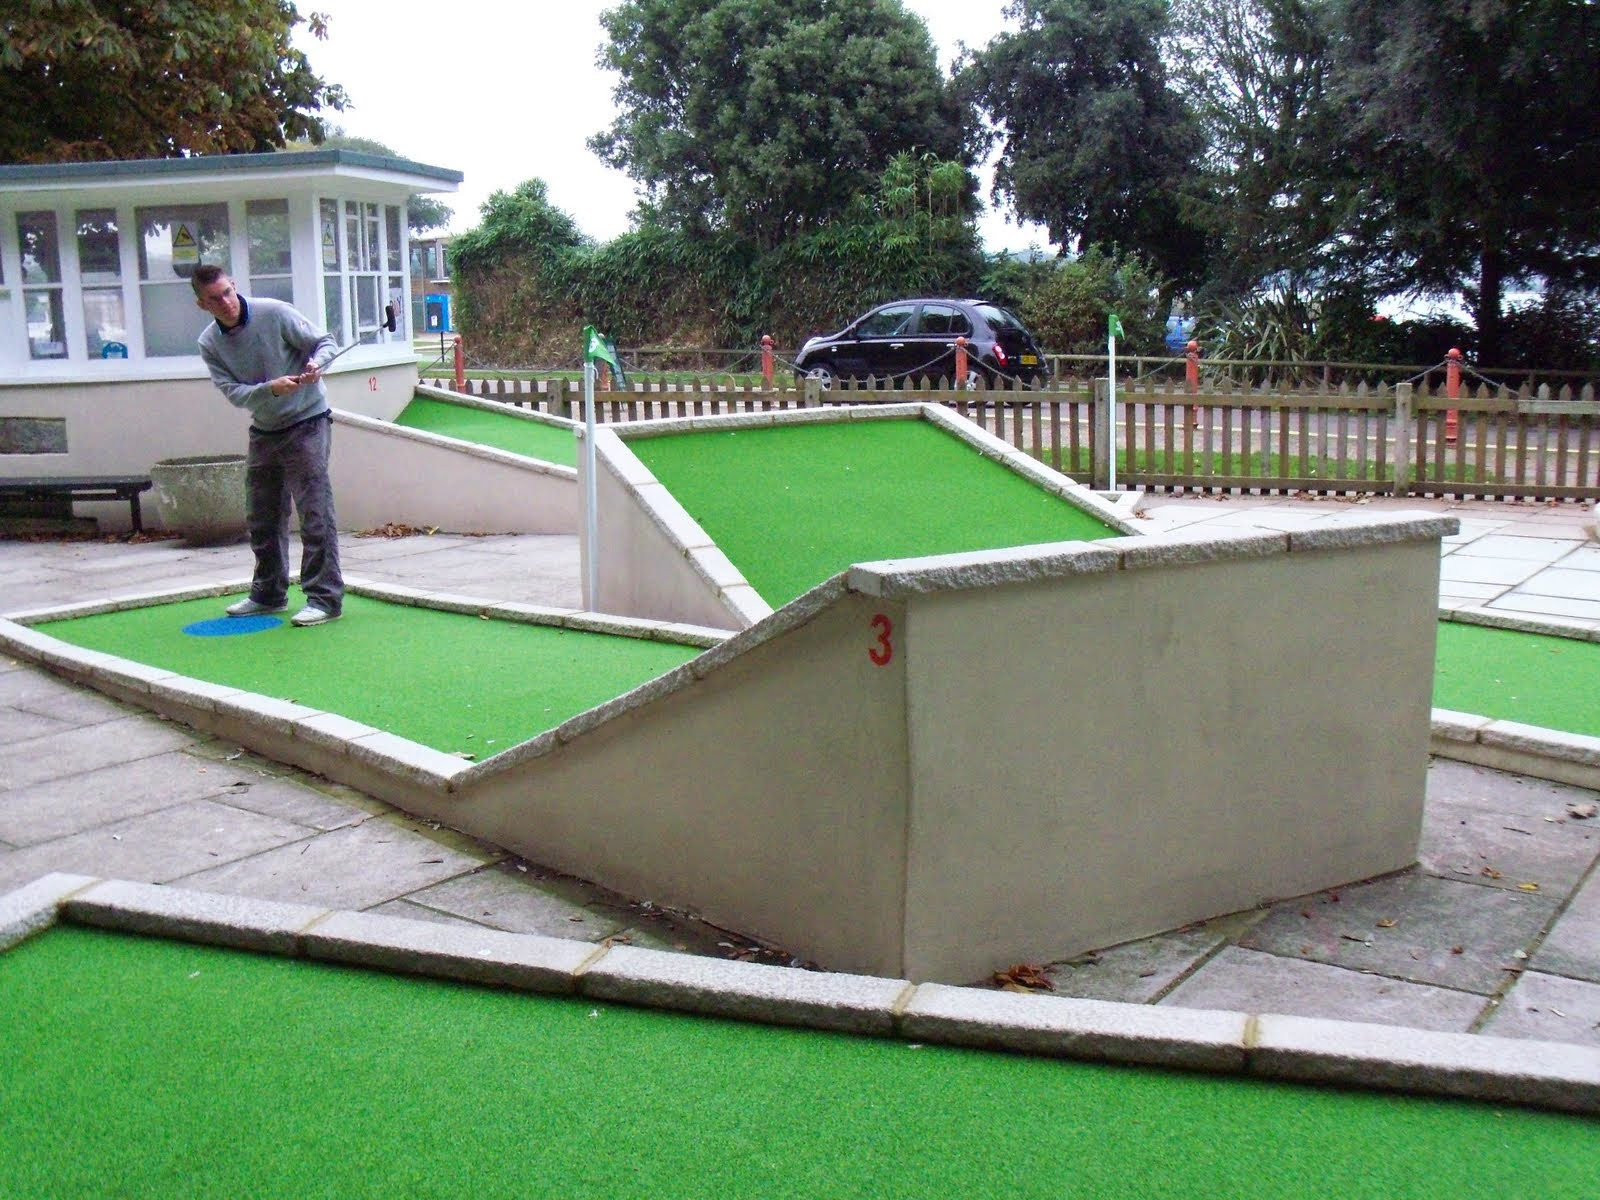 Poole Park Crazy Golf